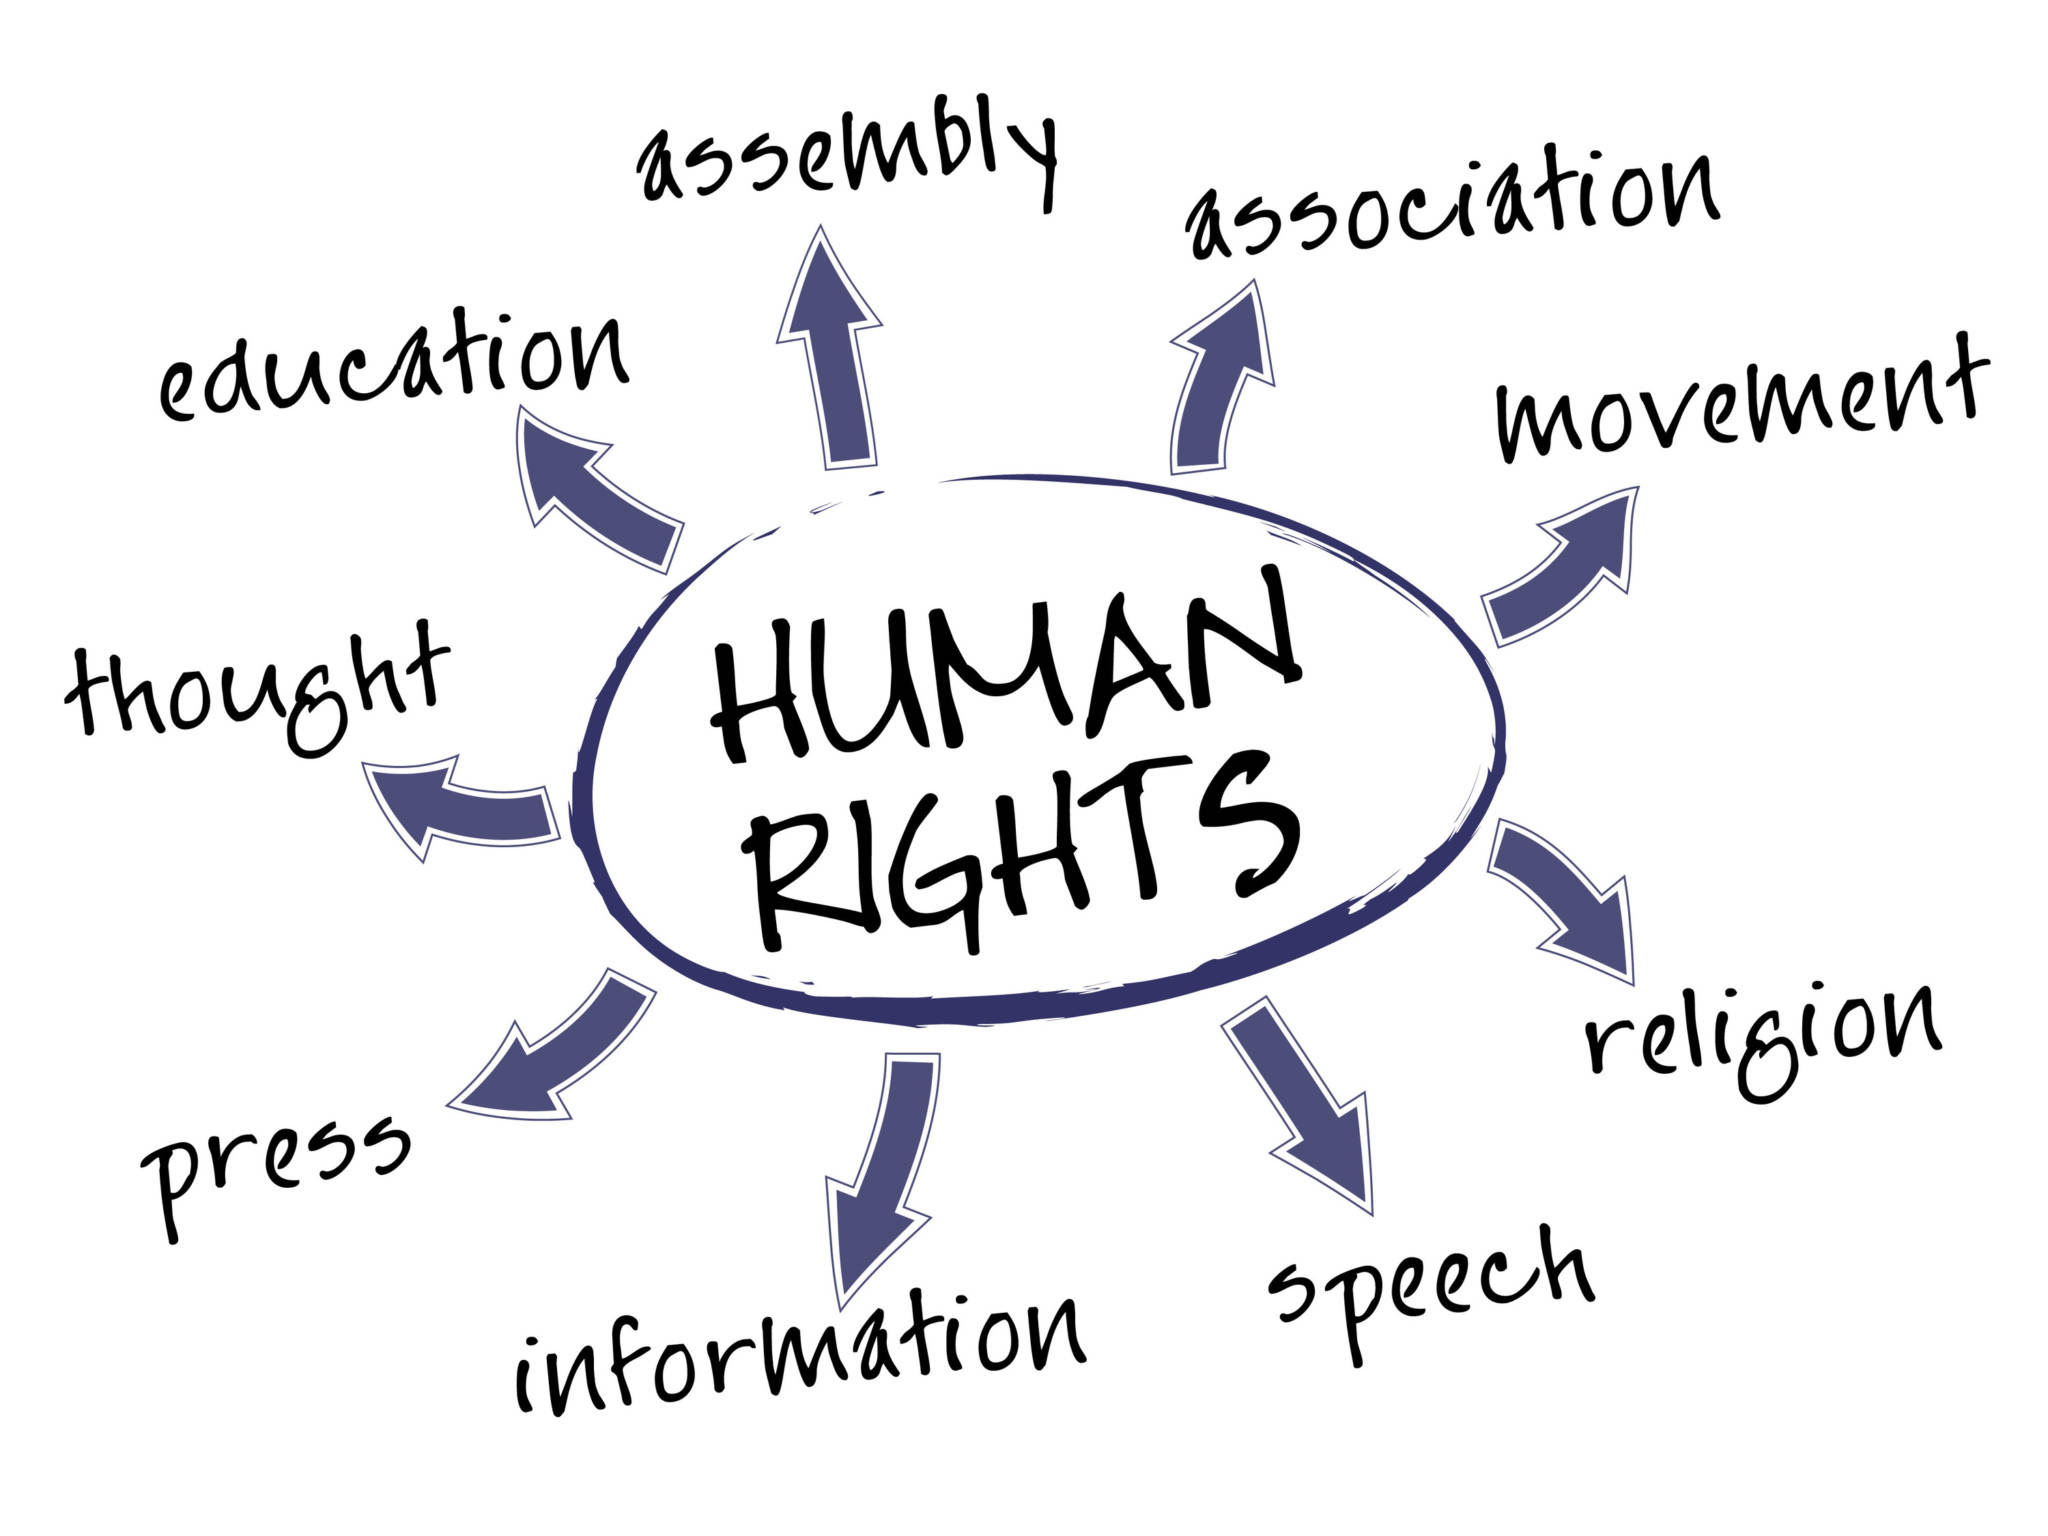 http://russell-legal.ca/wp-content/uploads/2013/04/Human-Rights-Banner.jpg